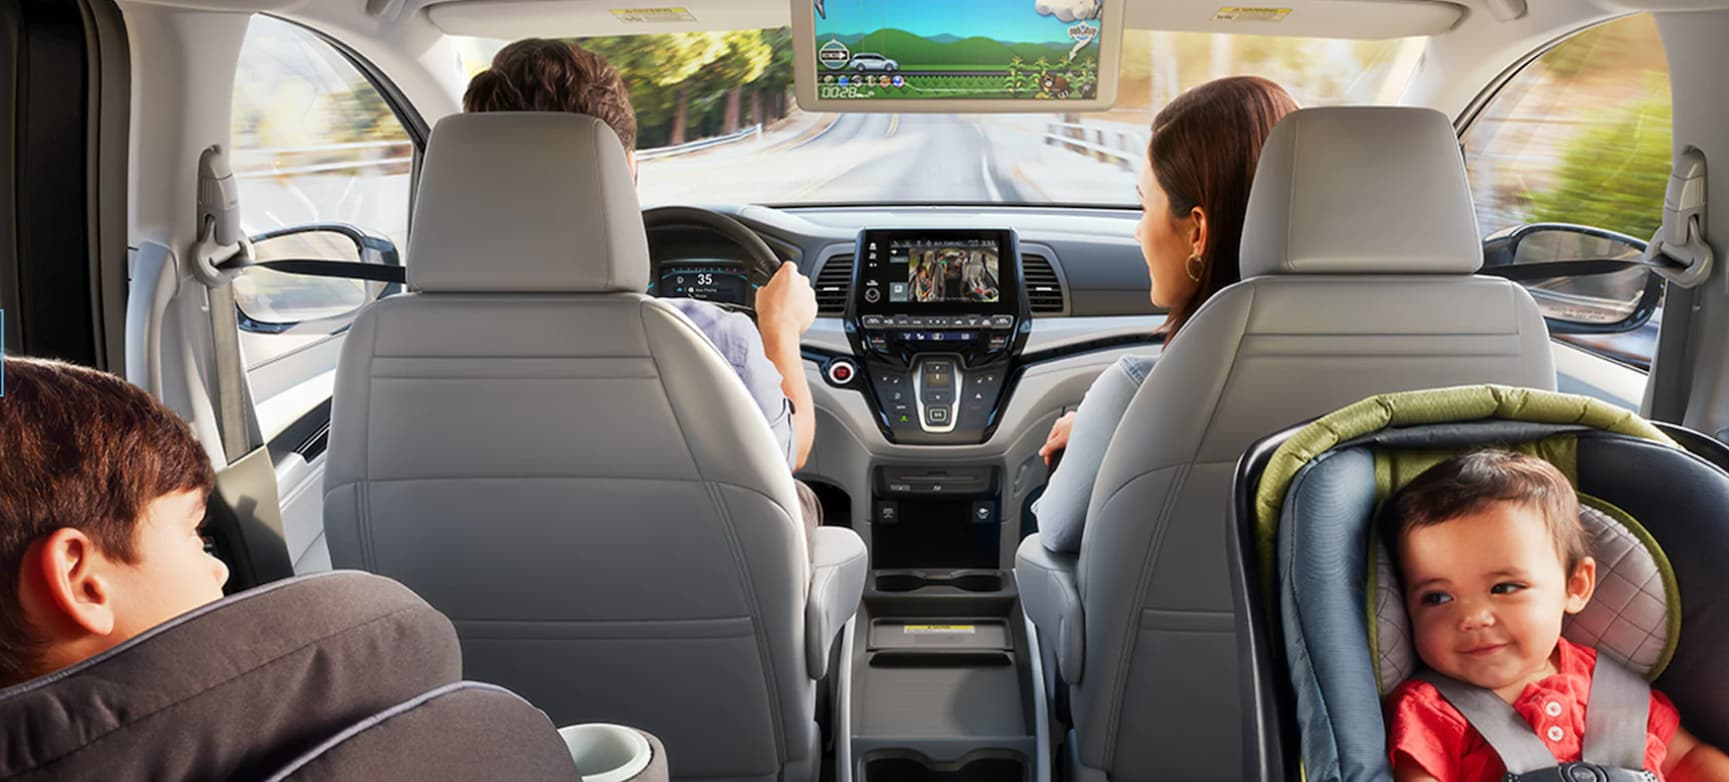 Honda Odyssey Interior Features